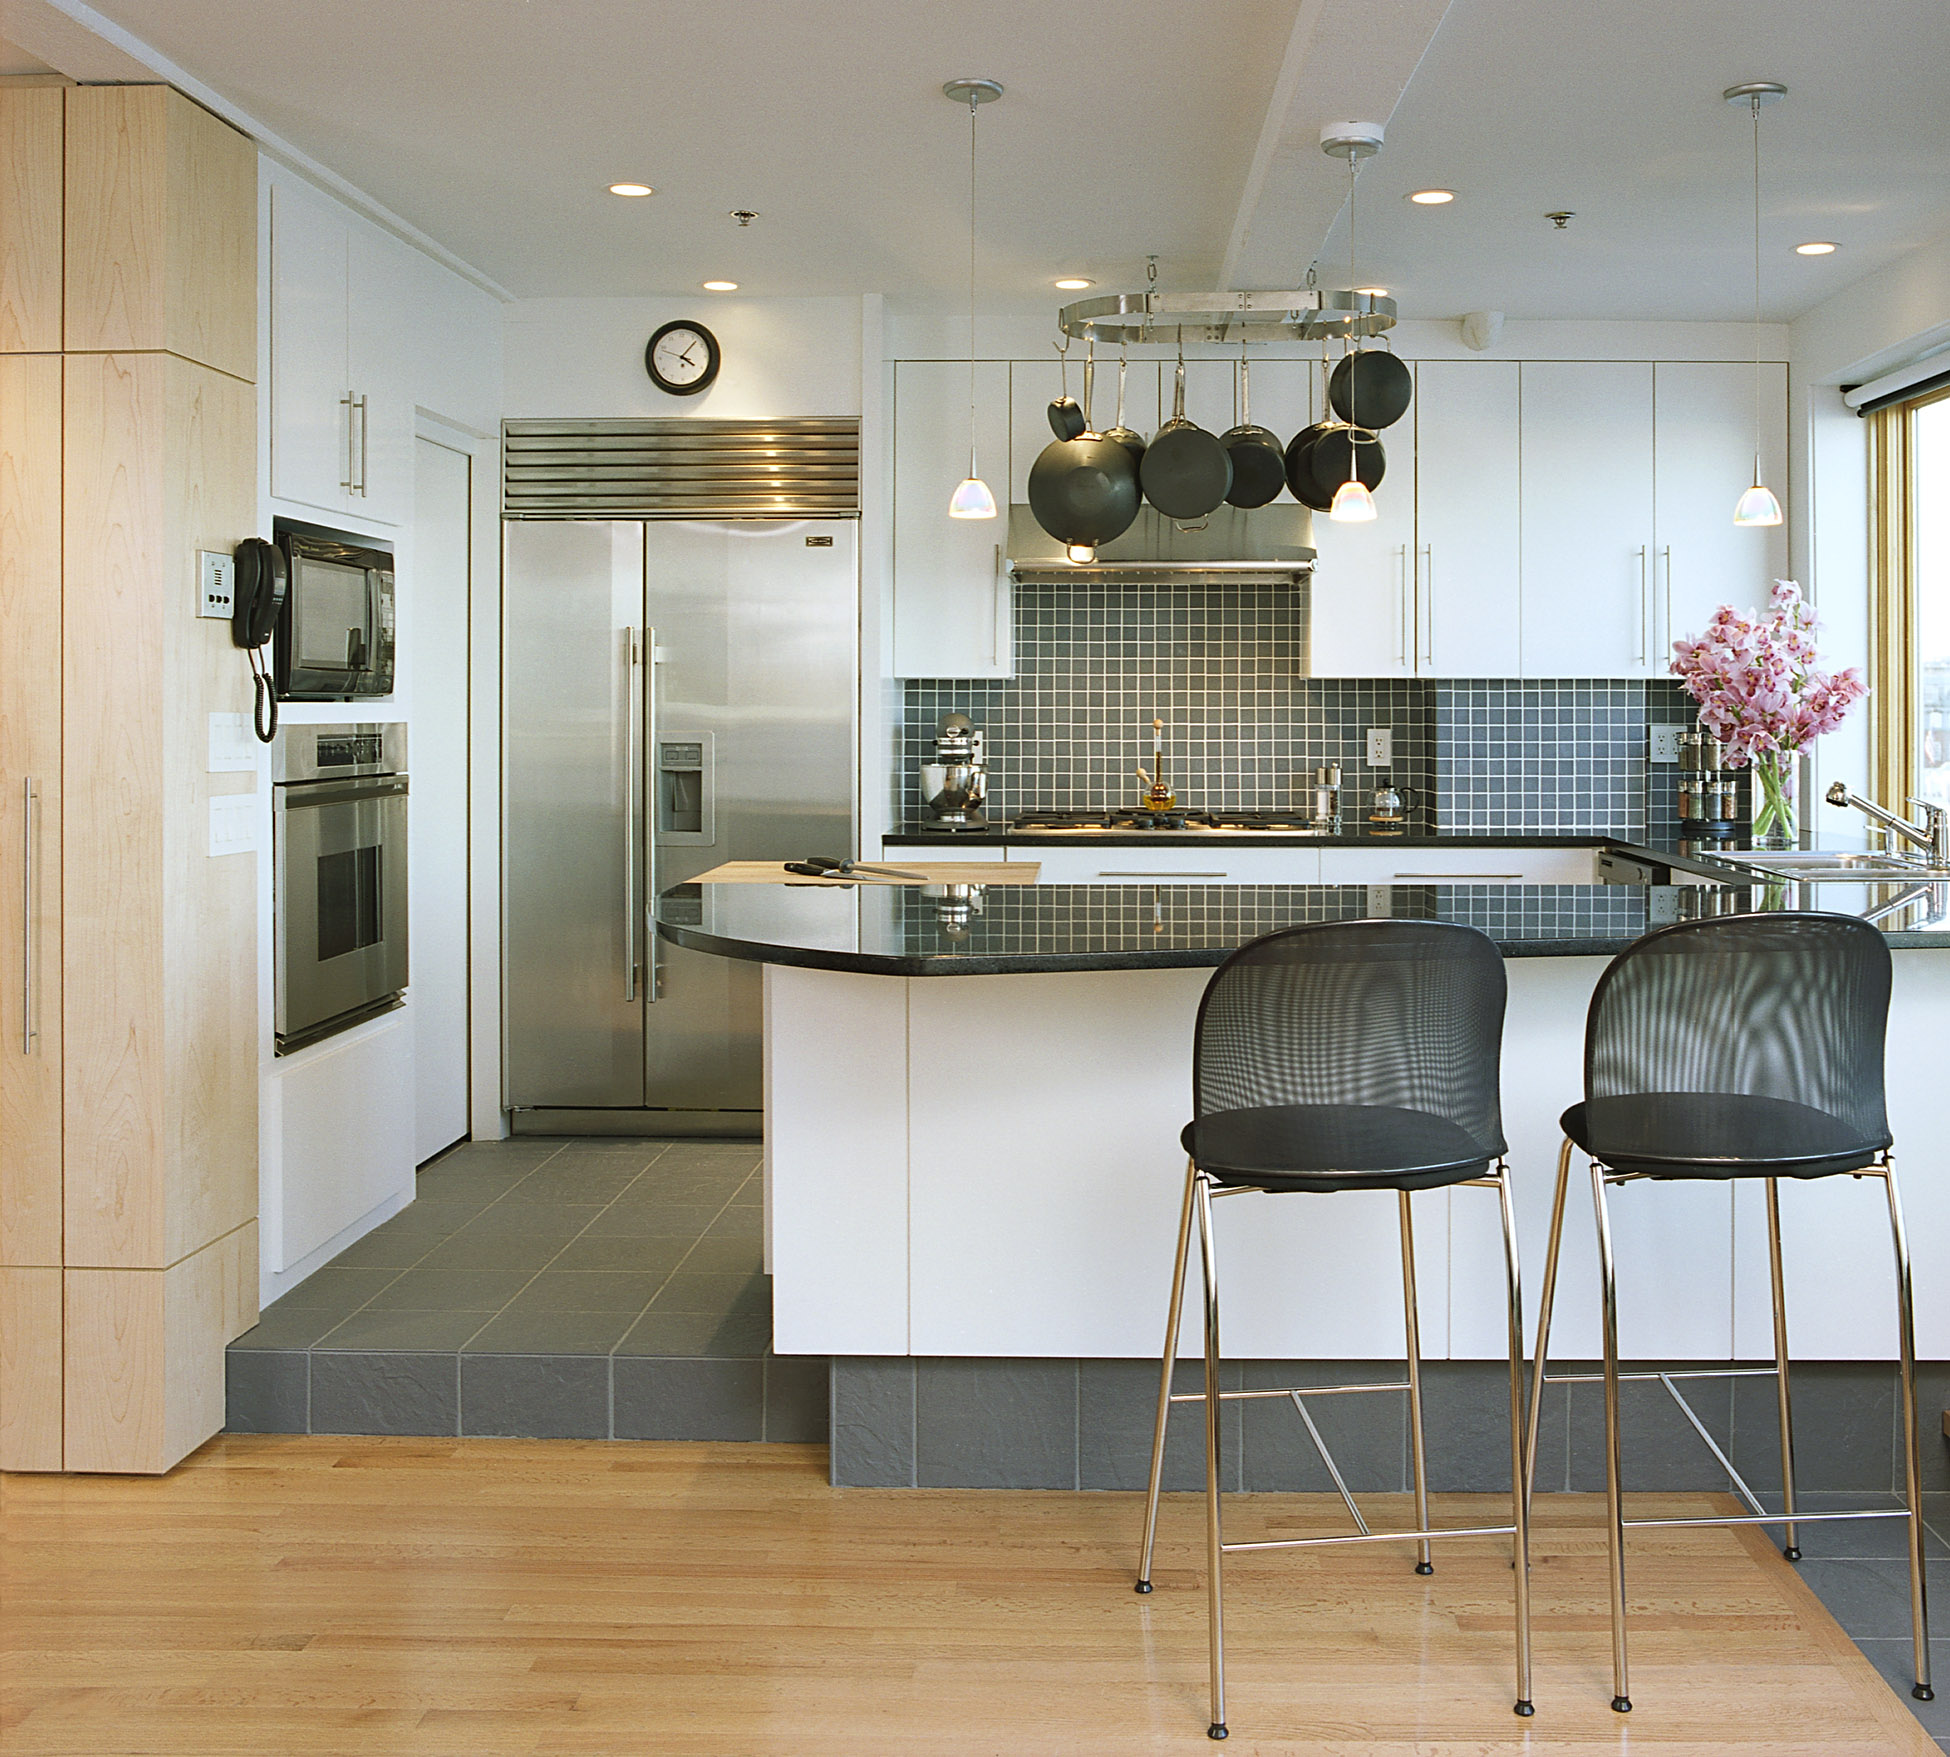 kennard architects - 434-fos kitchen.jpg